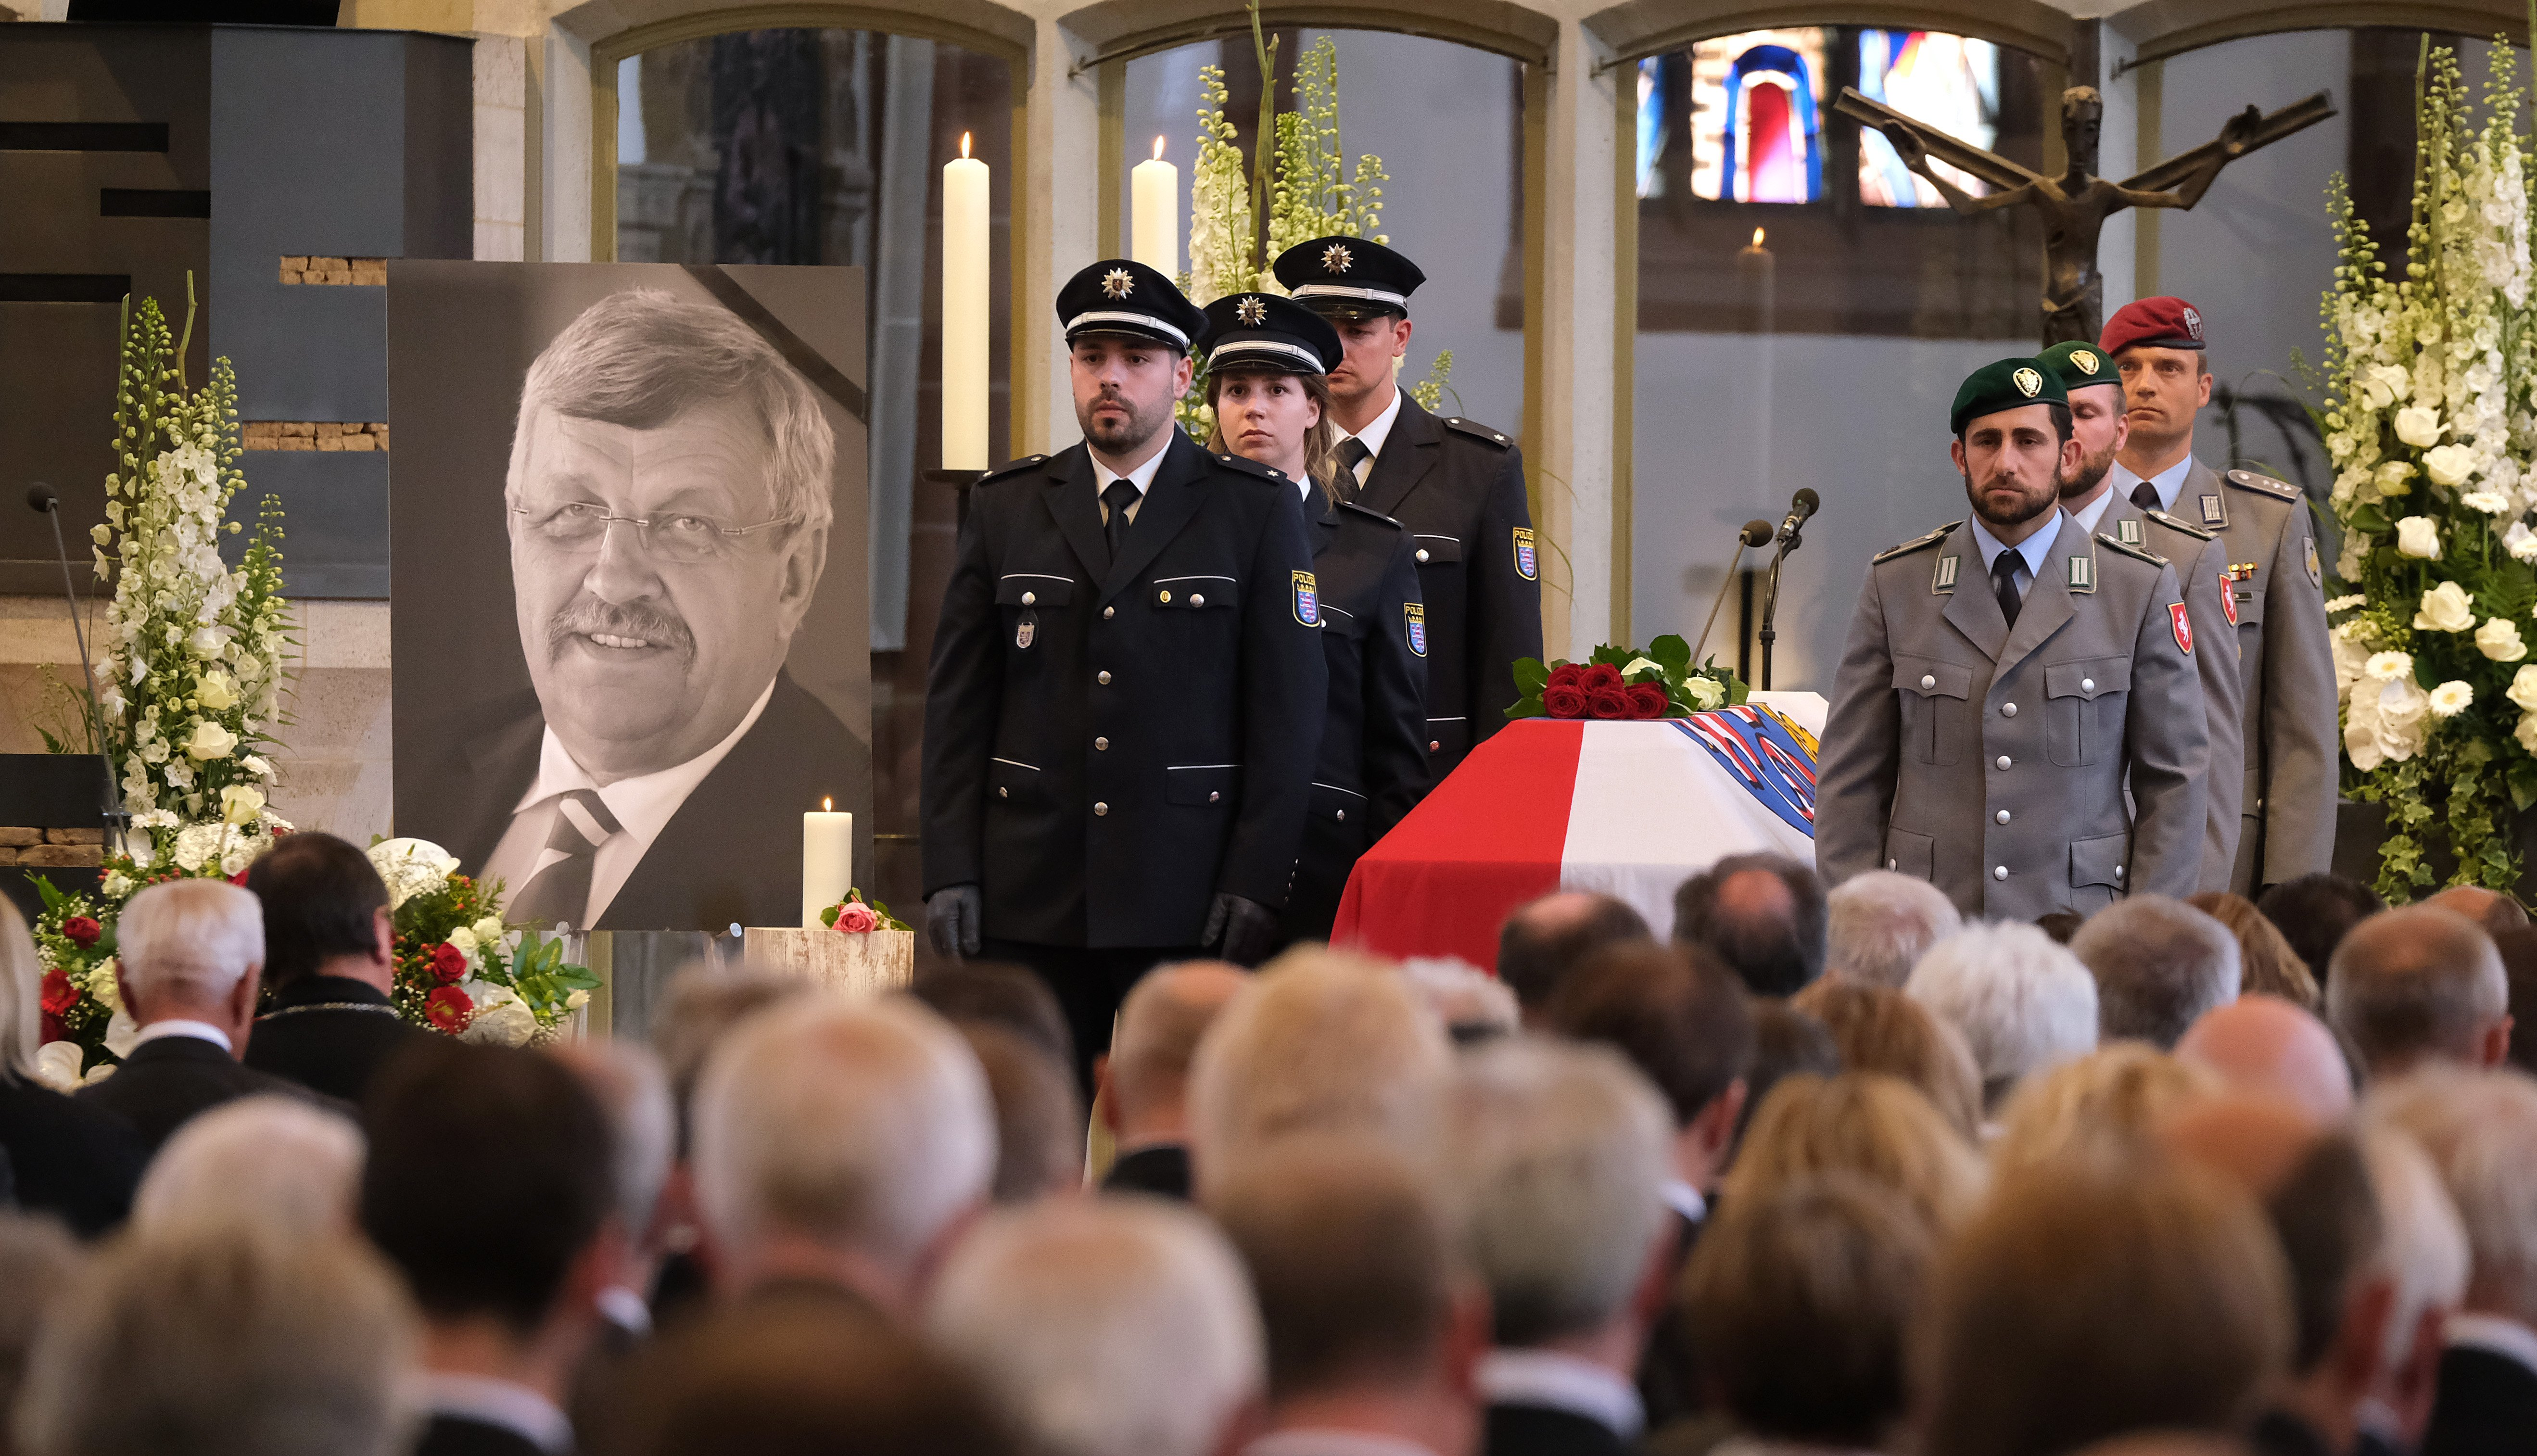 An honor guard stands at the coffin of murdered German politician Walter Lübcke at his memorial service at St. Martin church on June 13, 2019 in Kassel, Germany. Lübcke was found dead, shot in the head at close range, on the terrace of his home on June 2. Investigators have ruled out suicide and are investigating the case as murder. Lübcke, a Christian Democrat (CDU), was outspoken in his pro-immigration views, and one possibility investigators are pursuing is a right-wing motive to the shooting. (Photo by Sean Gallup/Getty Images)